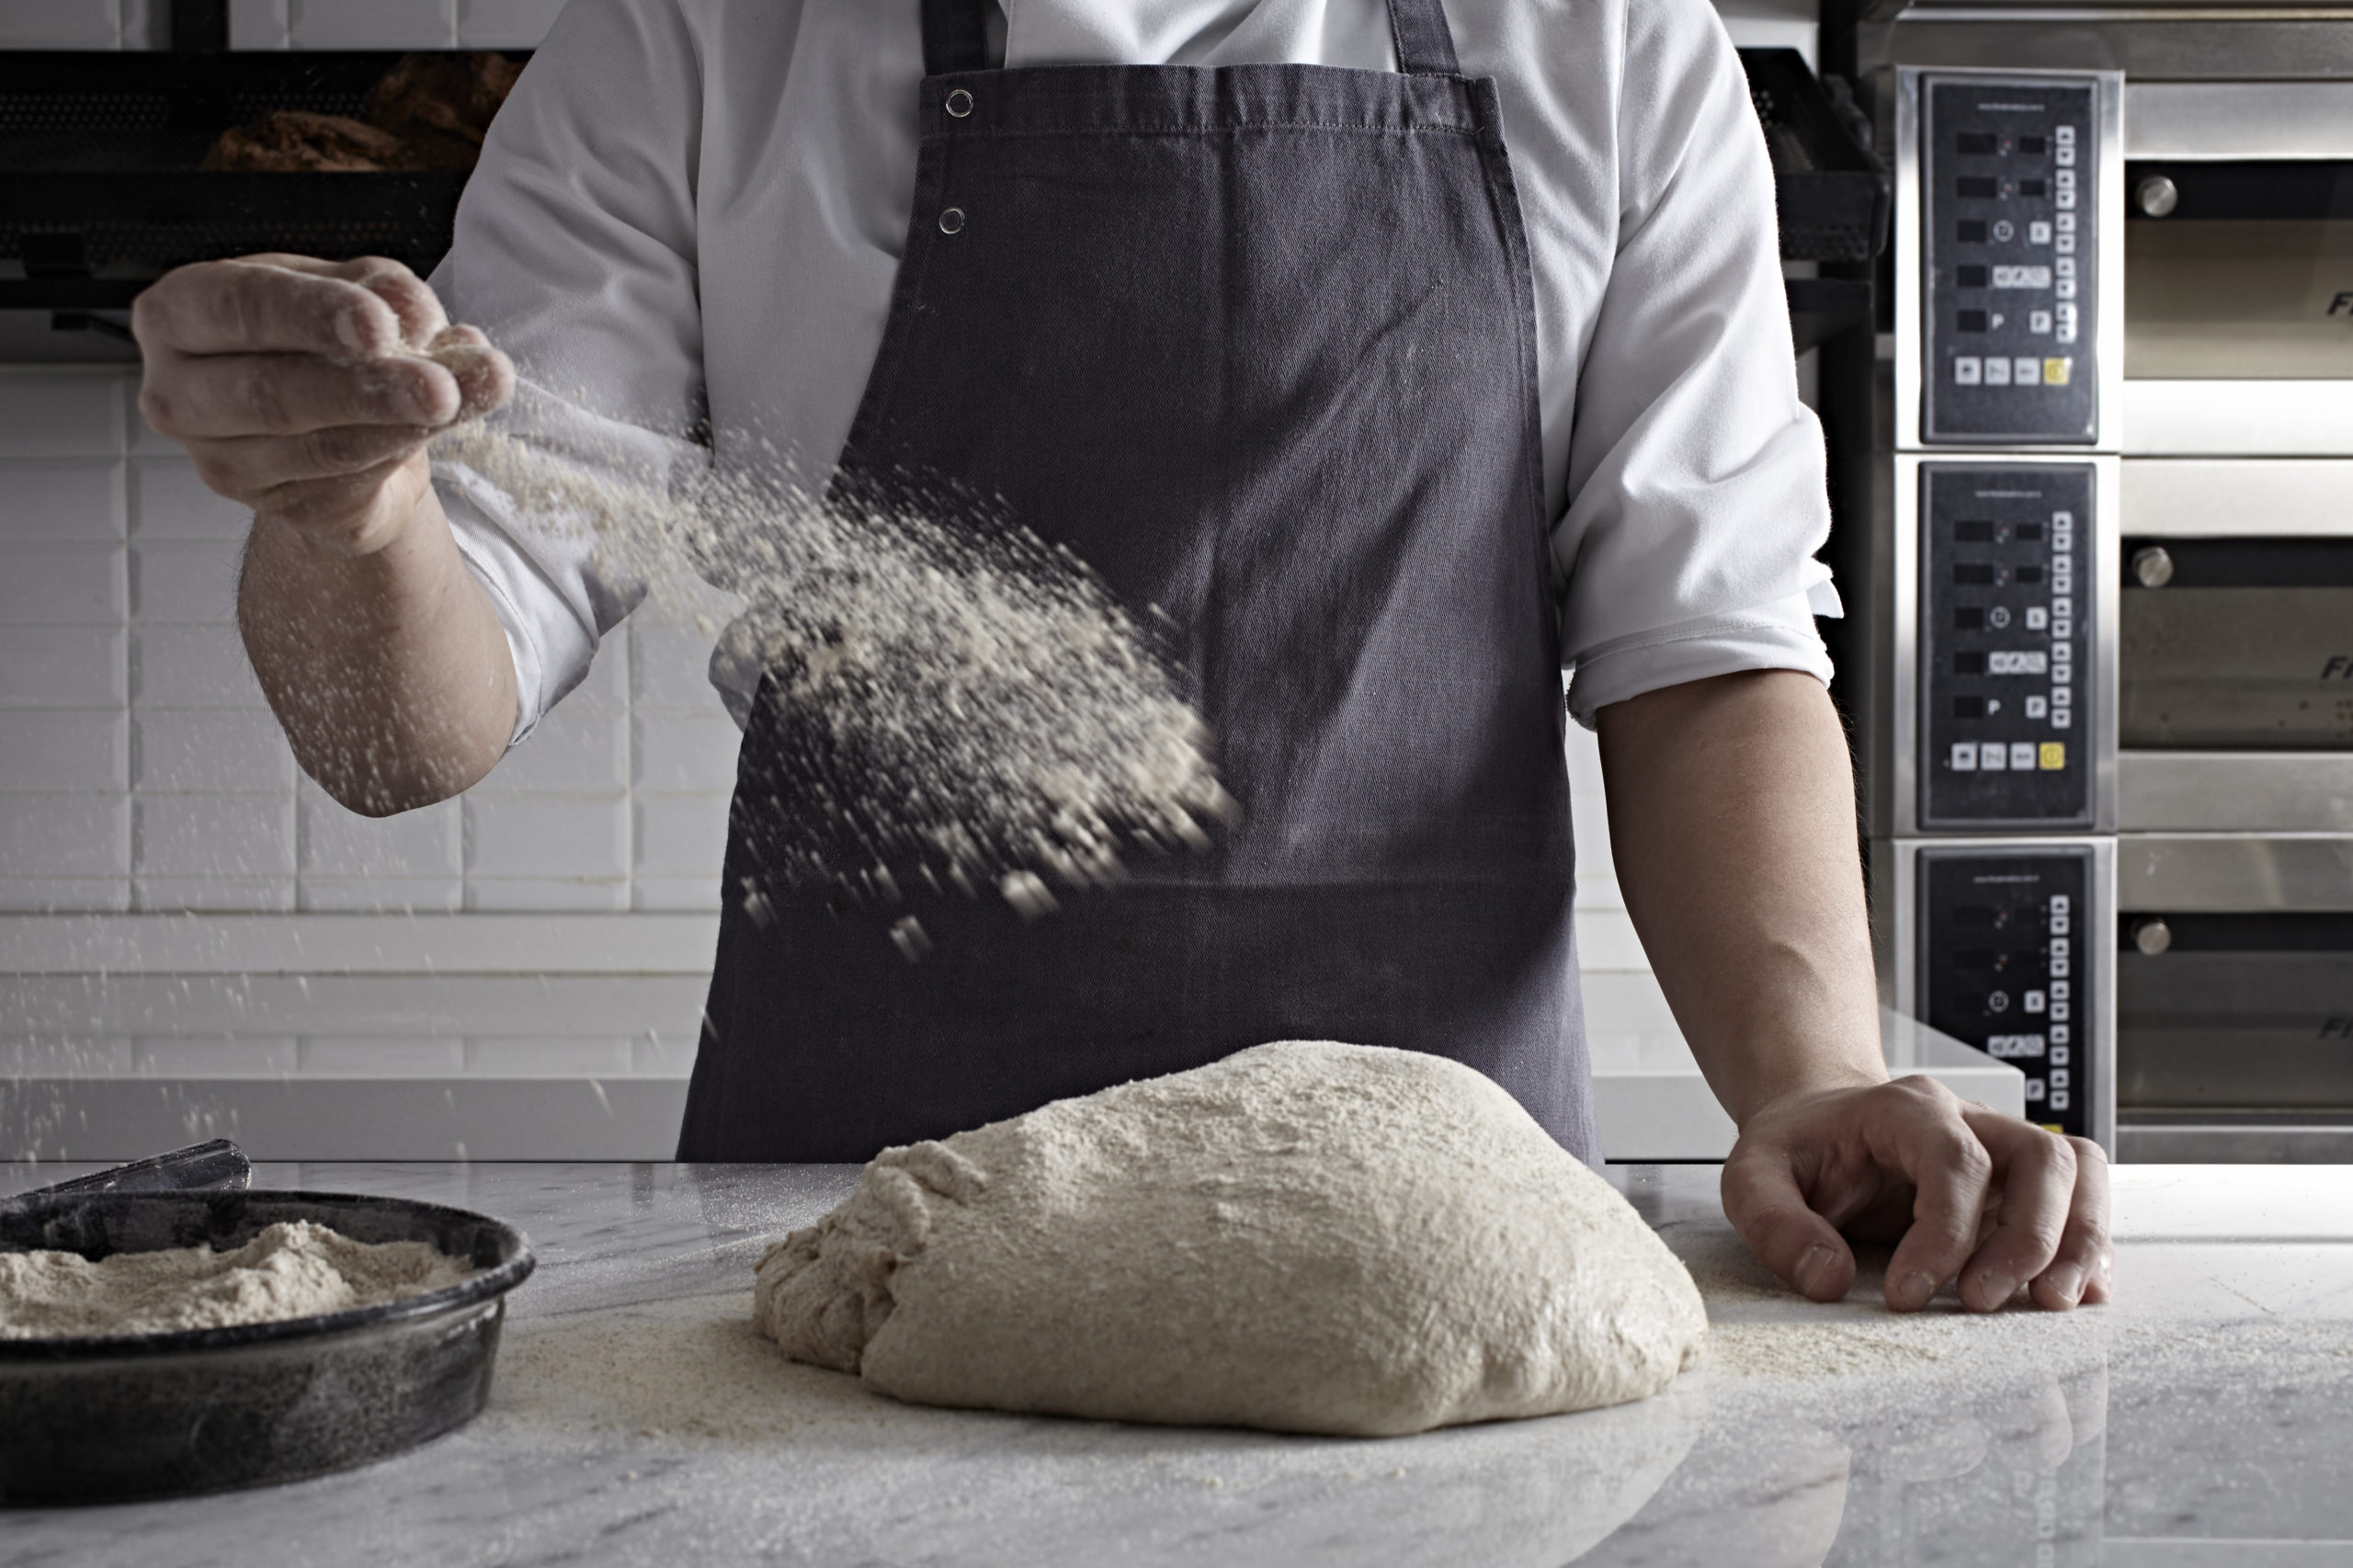 A man dusting flour on bread dough.